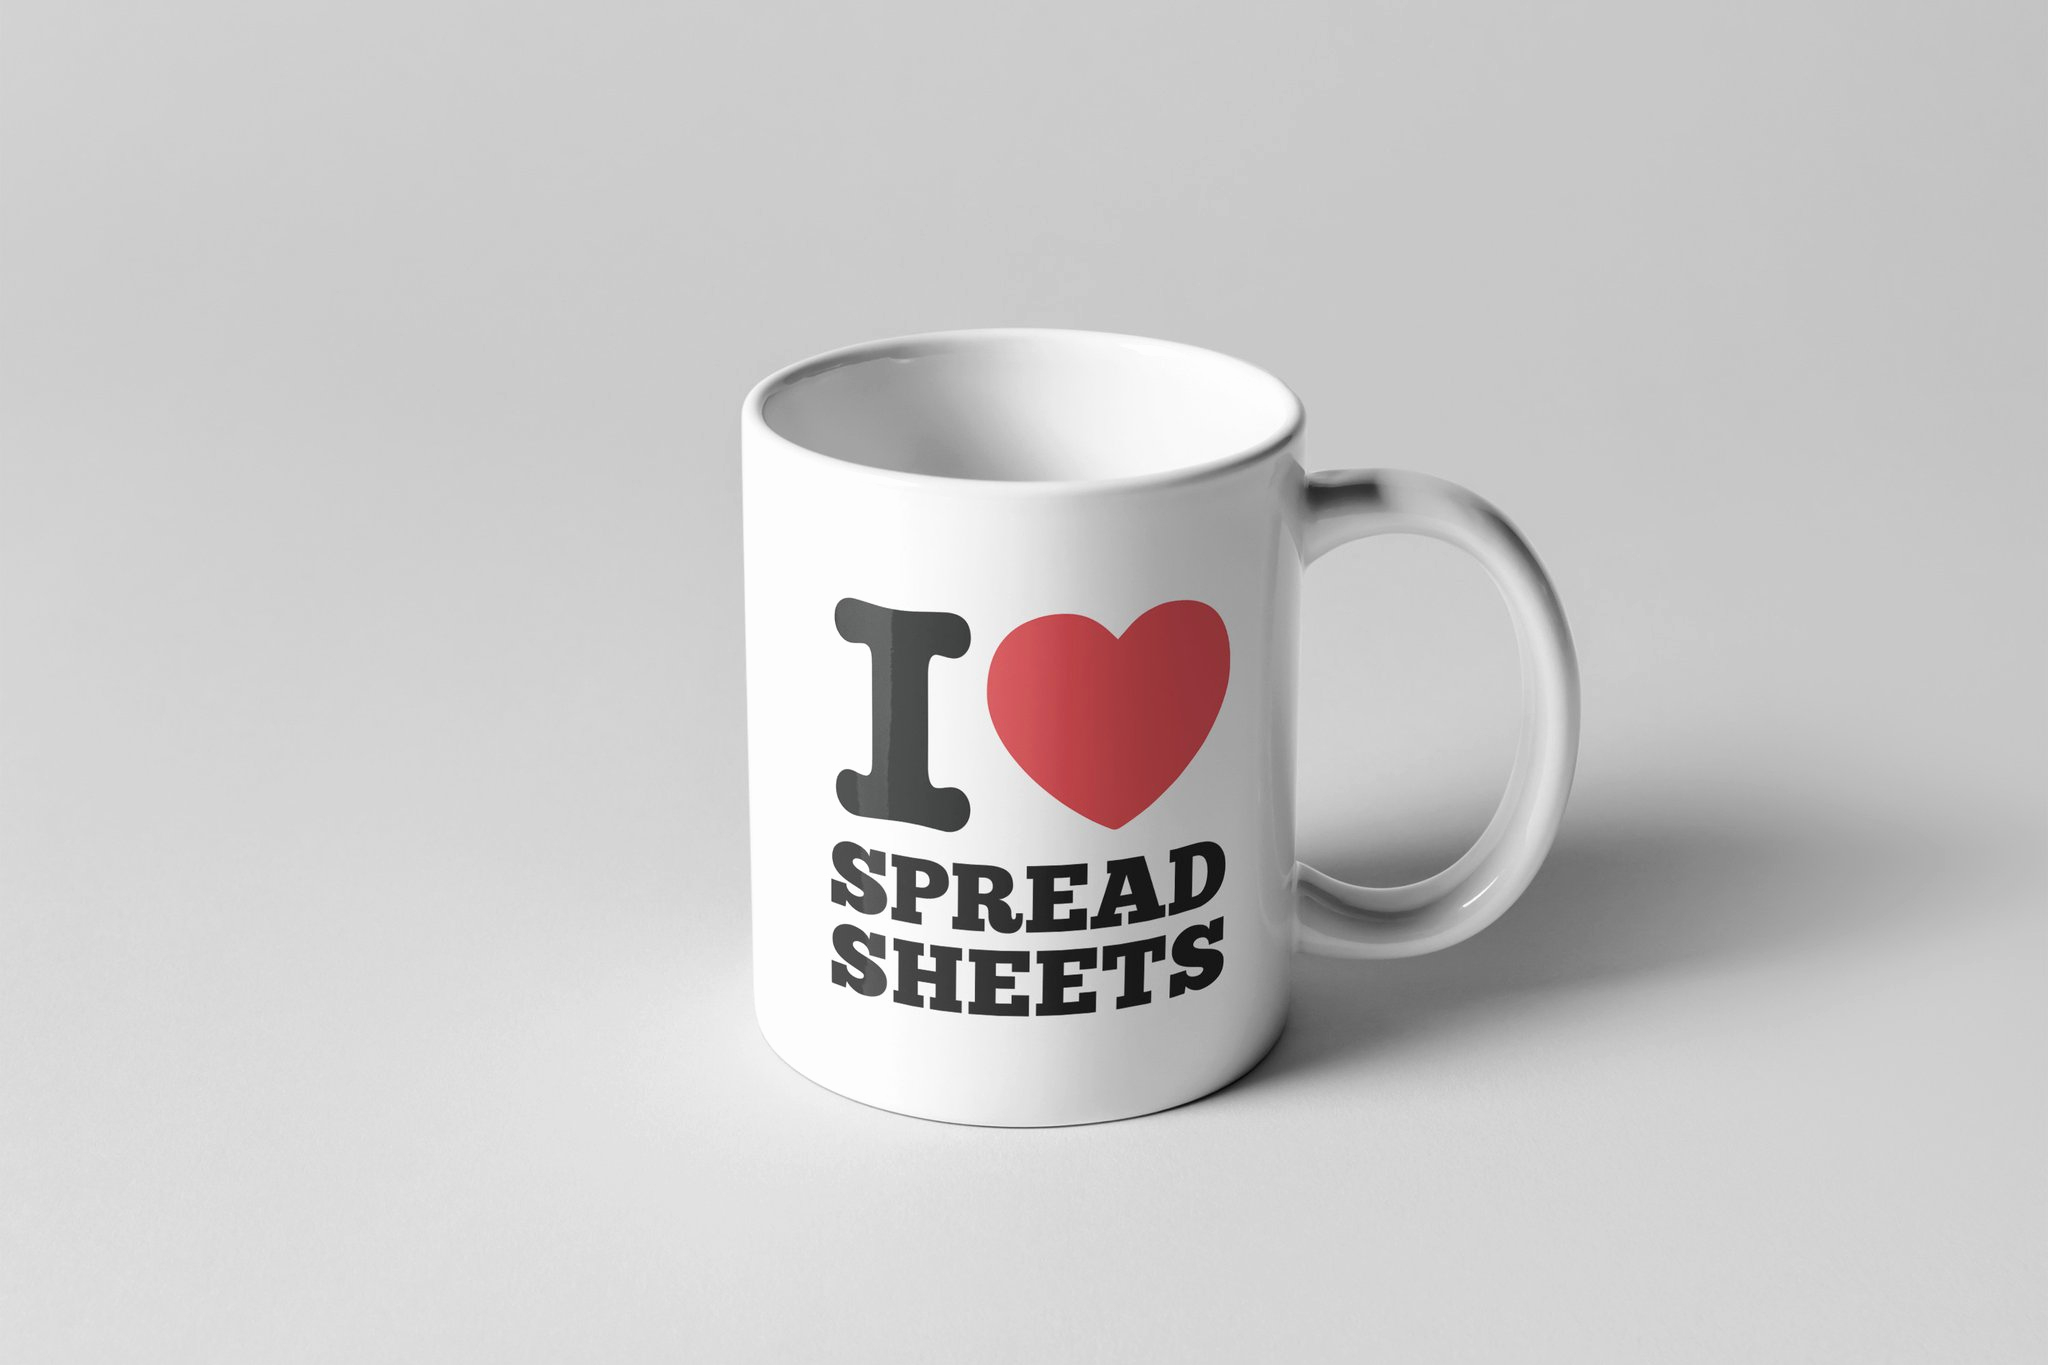 I Love Spreadsheets Mug Elegant I Love Spreadsheets Mug – Monkey Duo To I Love Spreadsheets Mug